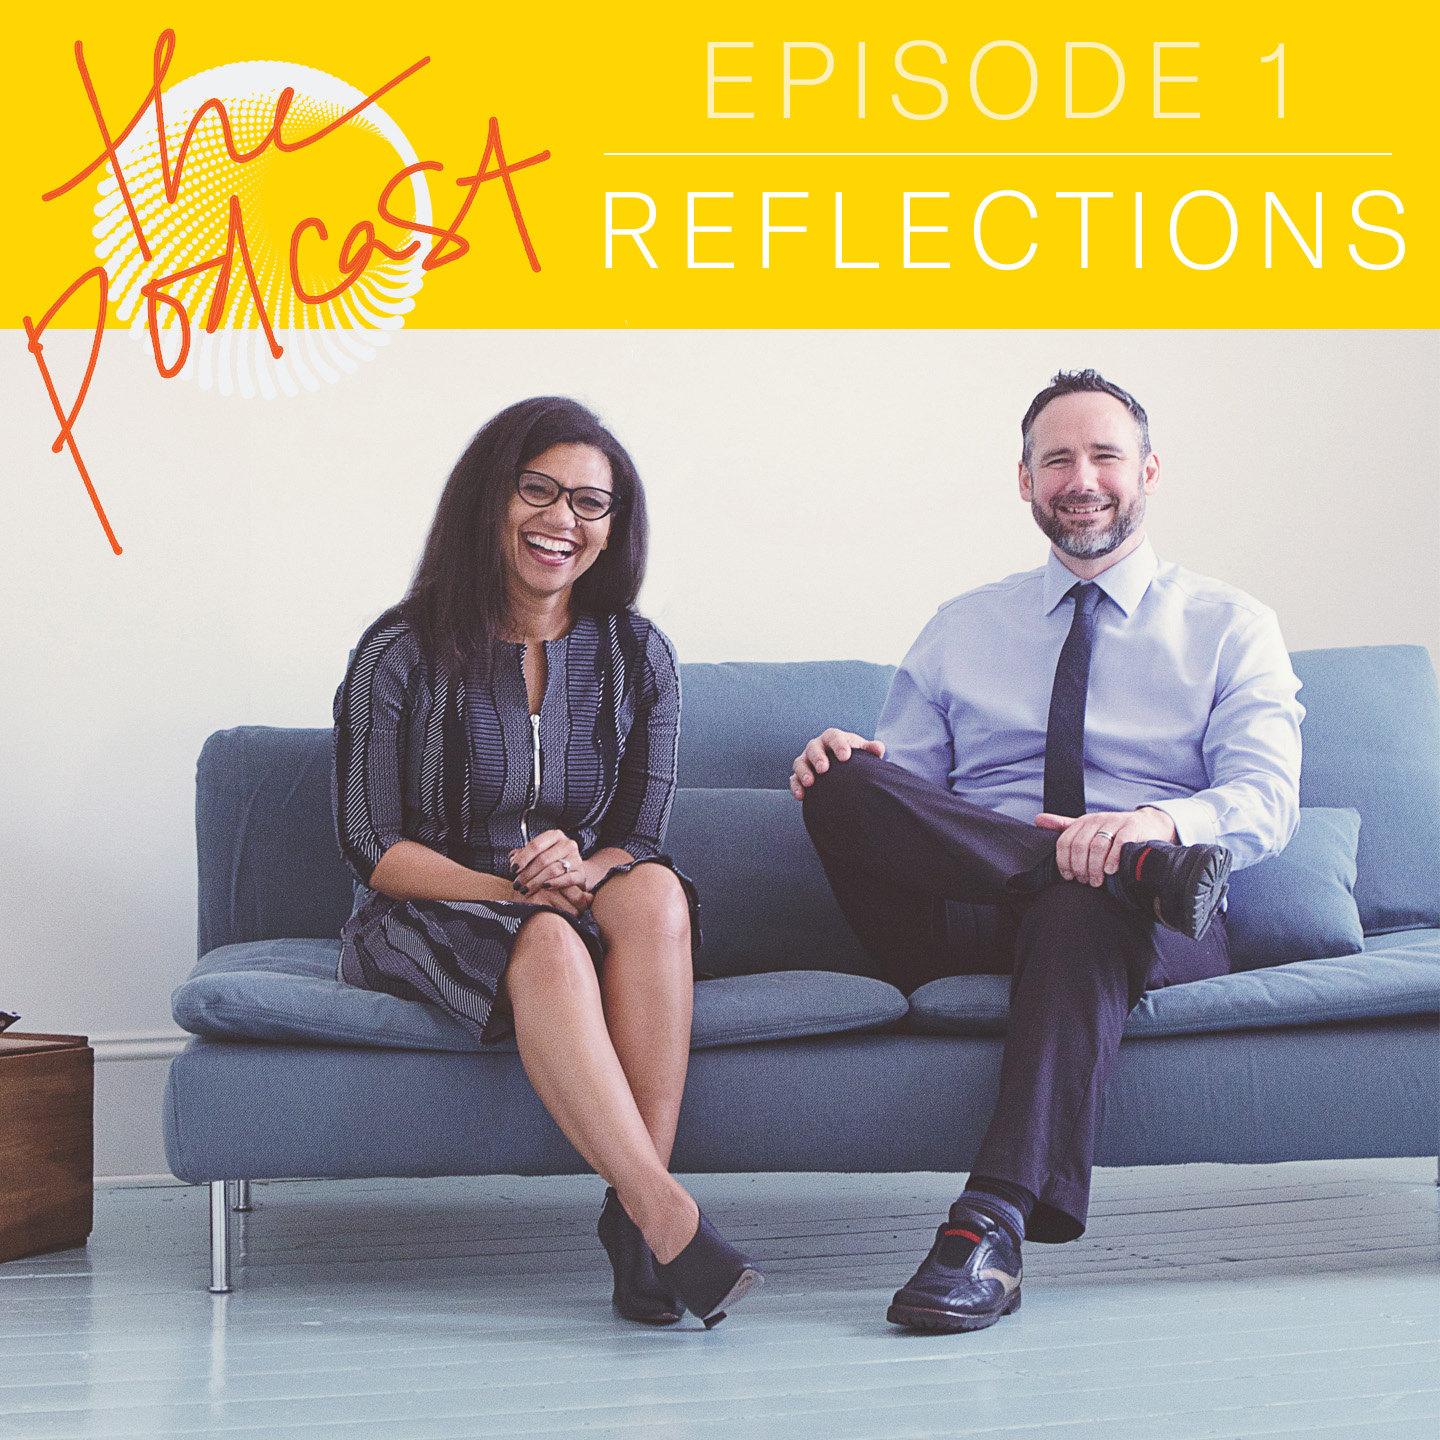 Episode 1.01: Reflections   WHAT MATTERS MOST AS CHANGE MAKERS PUSH BACK ON THE STATUS QUO?  Tim and Tuesday kick off with a lively conversation on backwards-engineering and reimagining broken systems, missing voices, and the status quo.  For show notes, visit the episode page.  || October 2, 2018